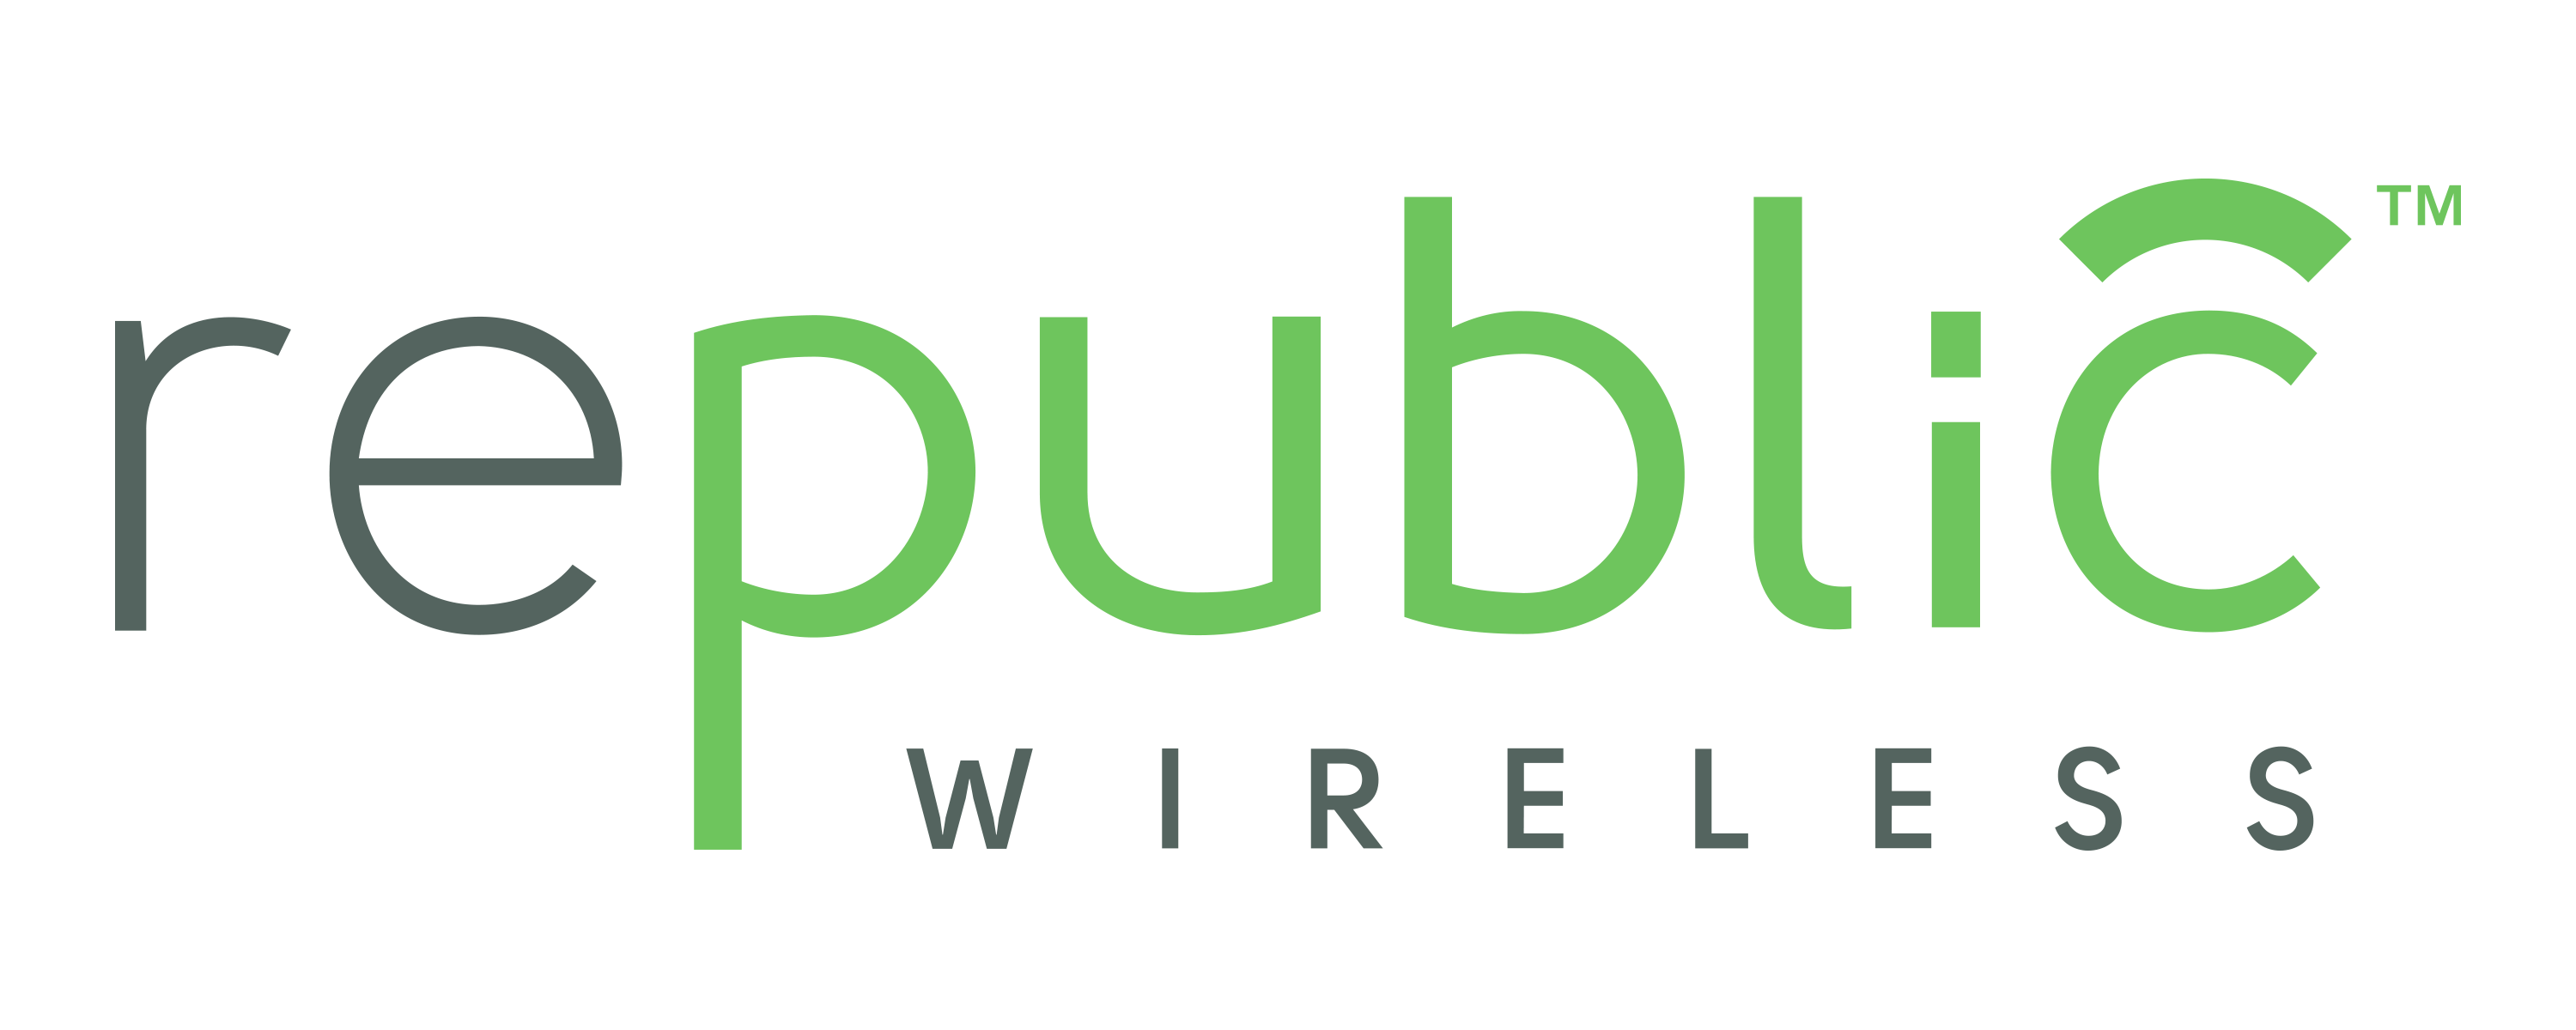 WiFi Calling Innovator Republic Wireless Expands Its Popular 'Bring